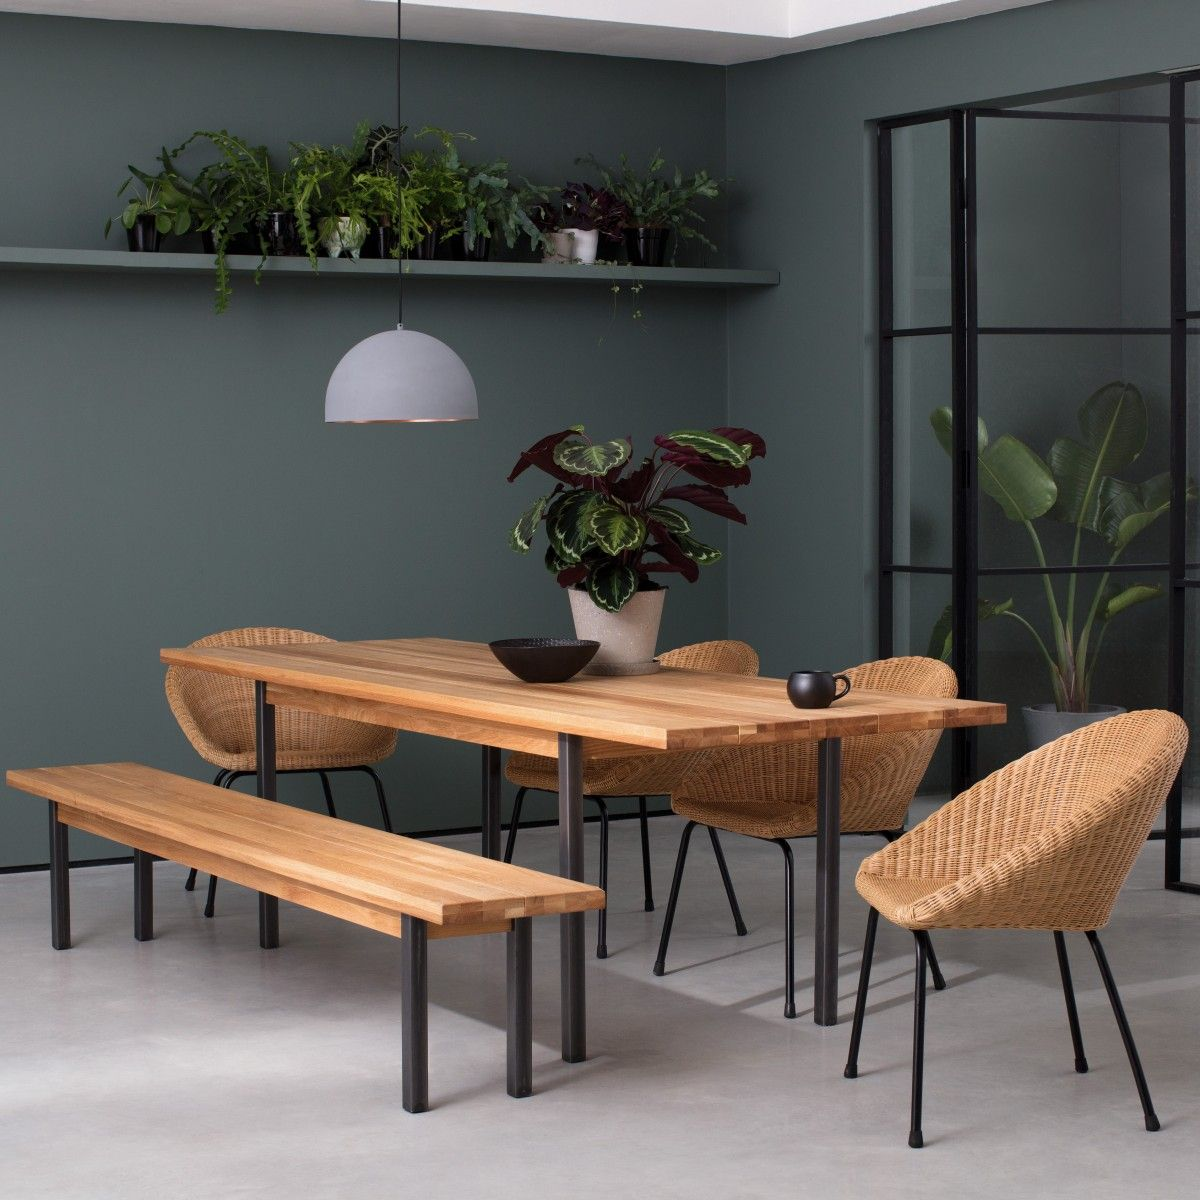 Feliz seater solid oak dining table with metal legs copper